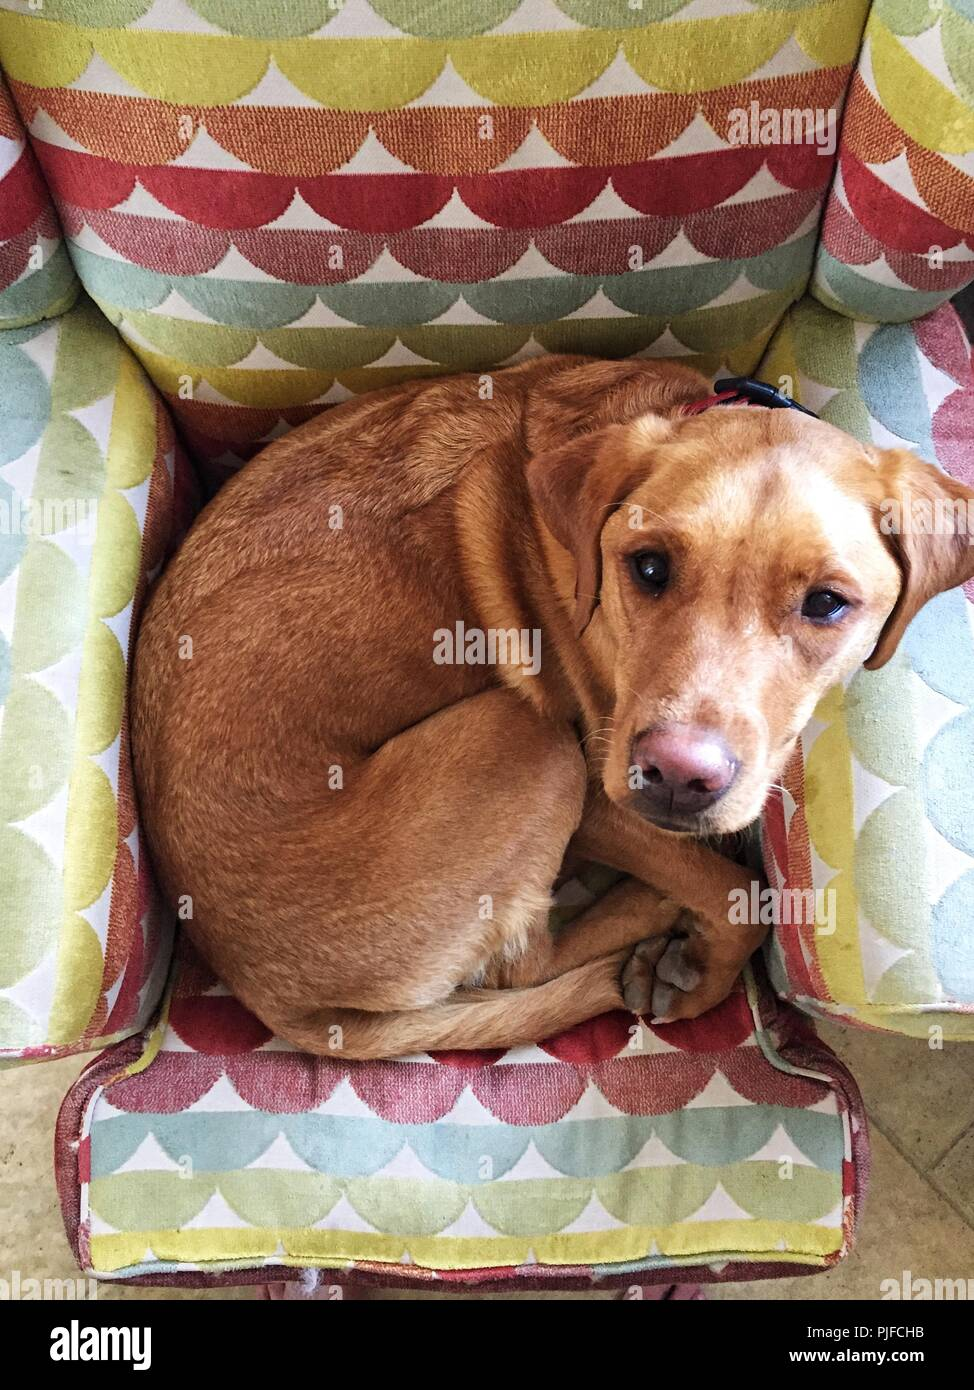 A lazy yellow Labrador retriever dog curled up in ball on a comfy armchair and looking up toward the camera with copy space. - Stock Image